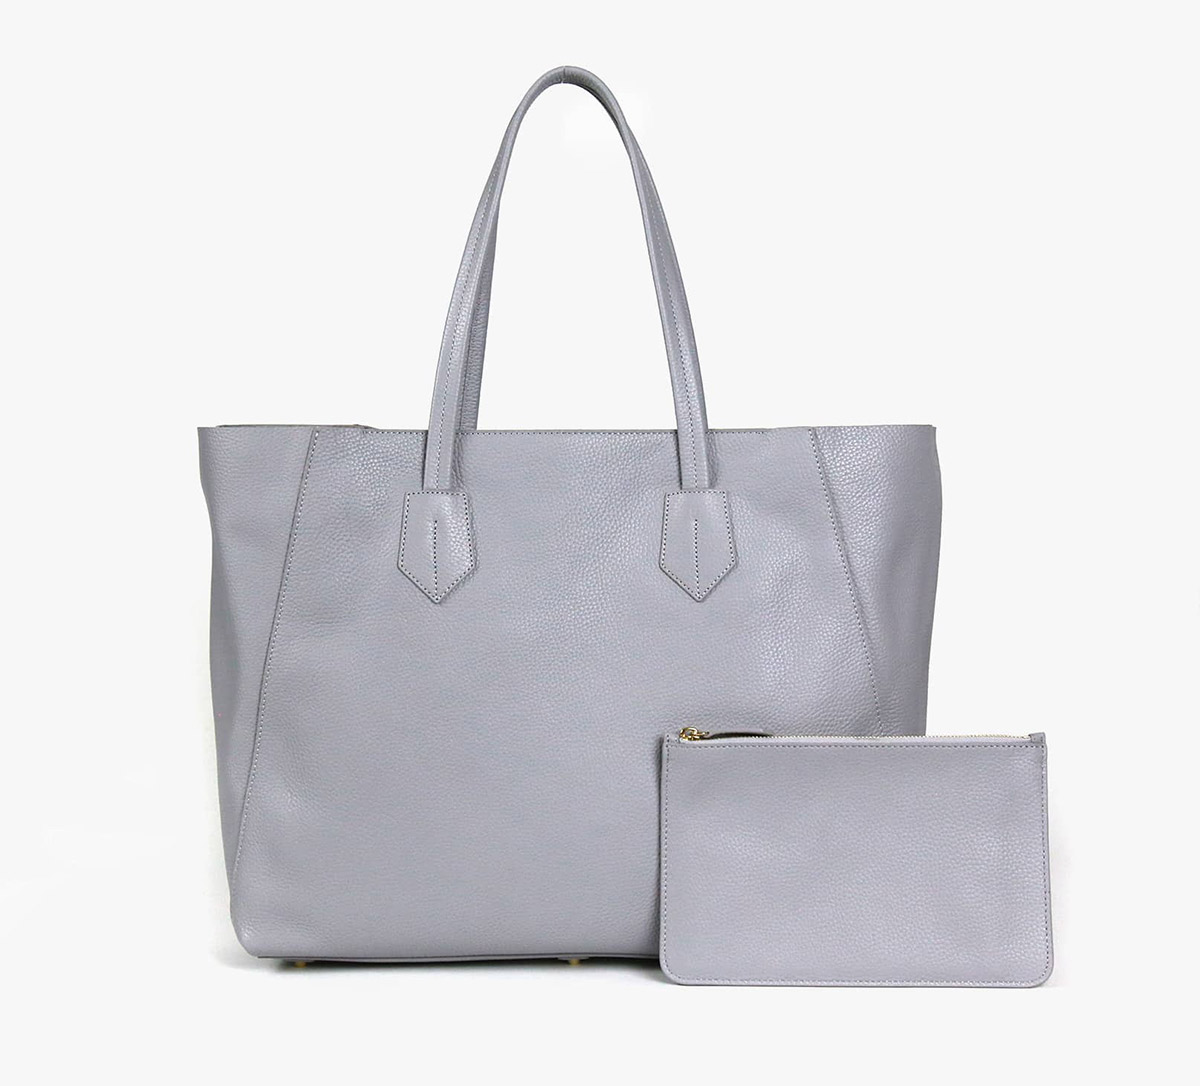 neely and chloe no. 2 Large tote stone grey front view